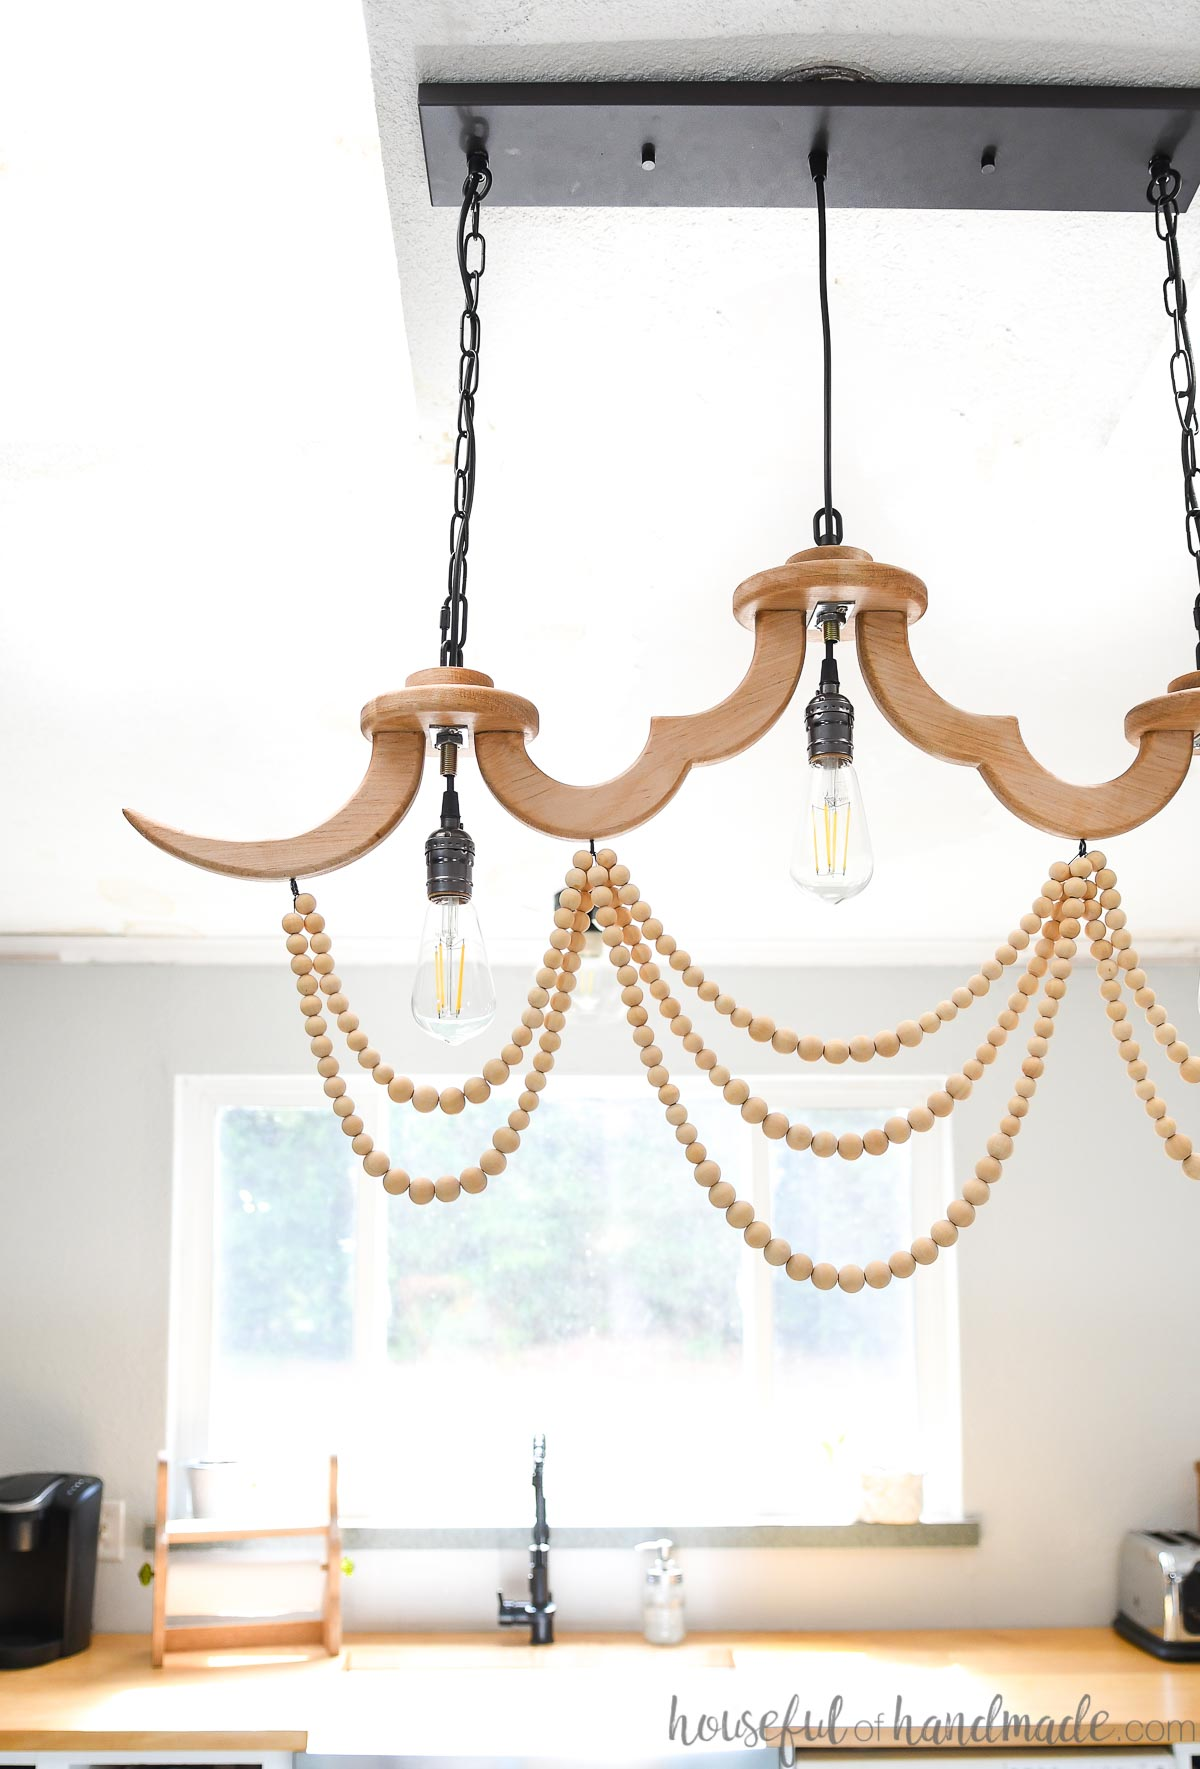 Straight on view of the DIY wood chandelier hanging above the kitchen island with the kitchen sink in the background.